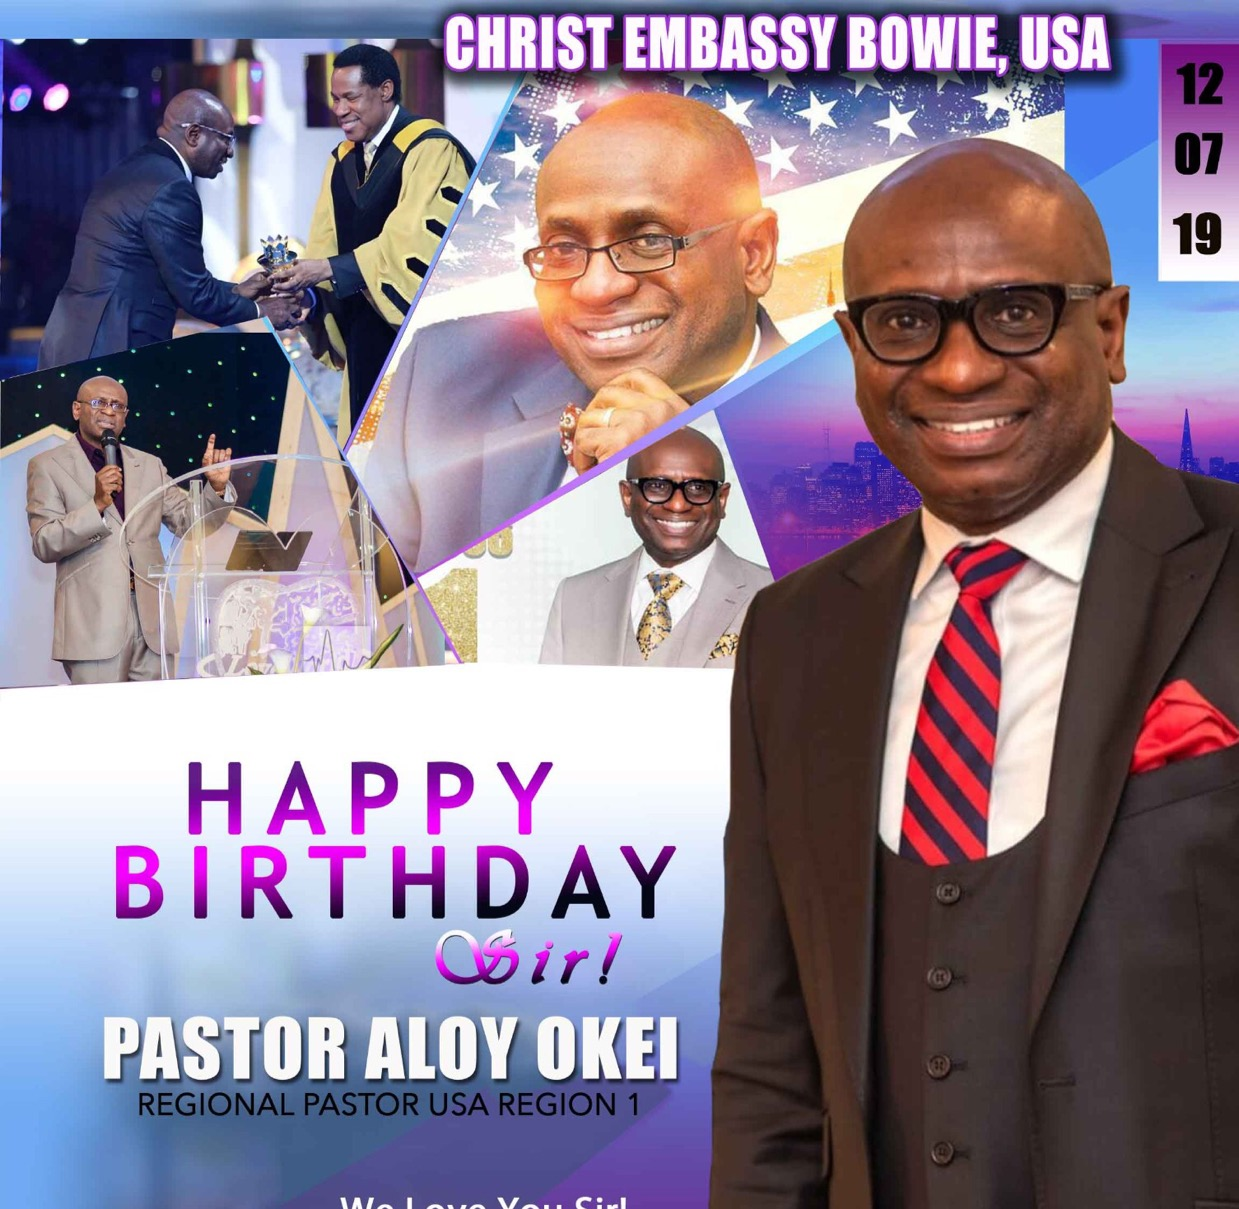 CHRIST EMBASSY BOWIE, MD USA.